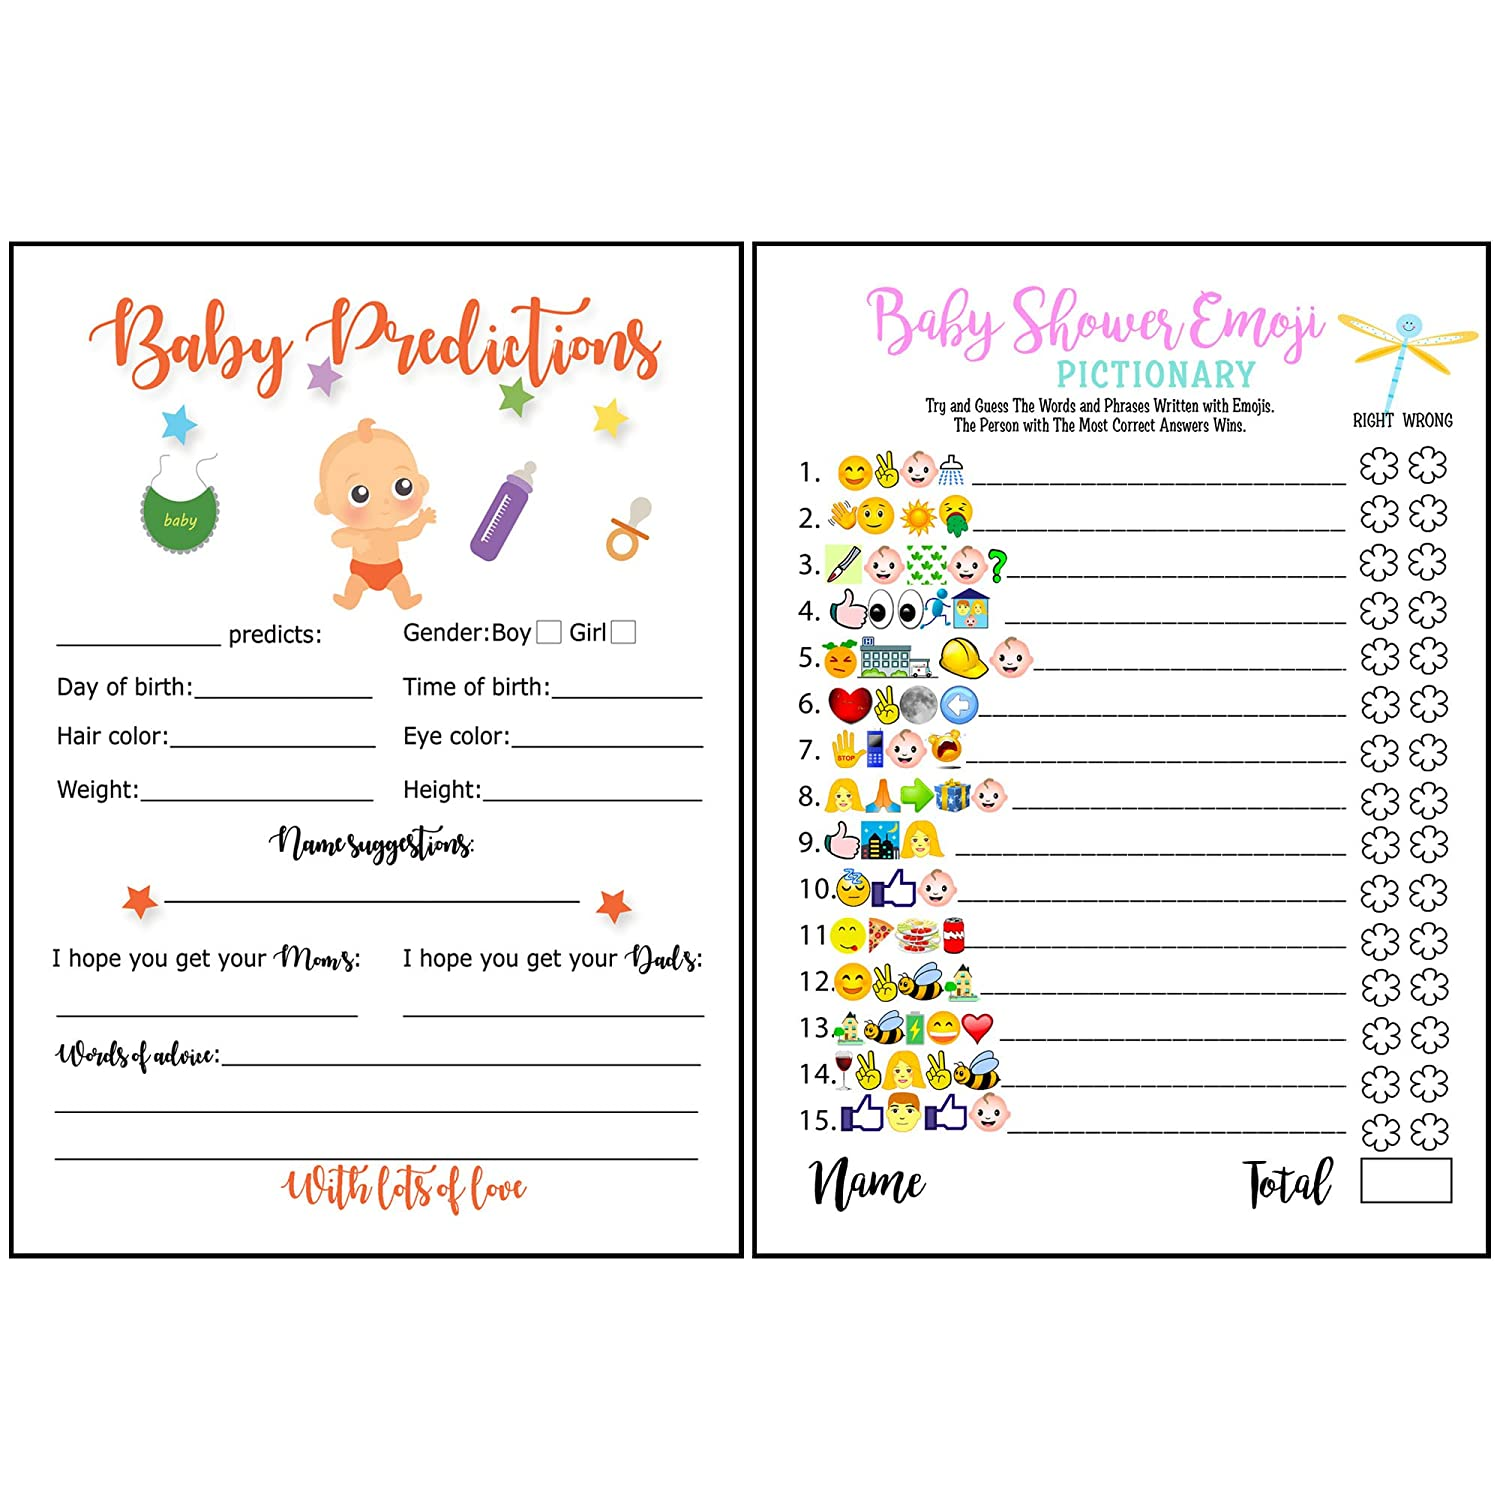 Baby Shower Games - Emoji Pictionary and Advice Prediction Card, 51